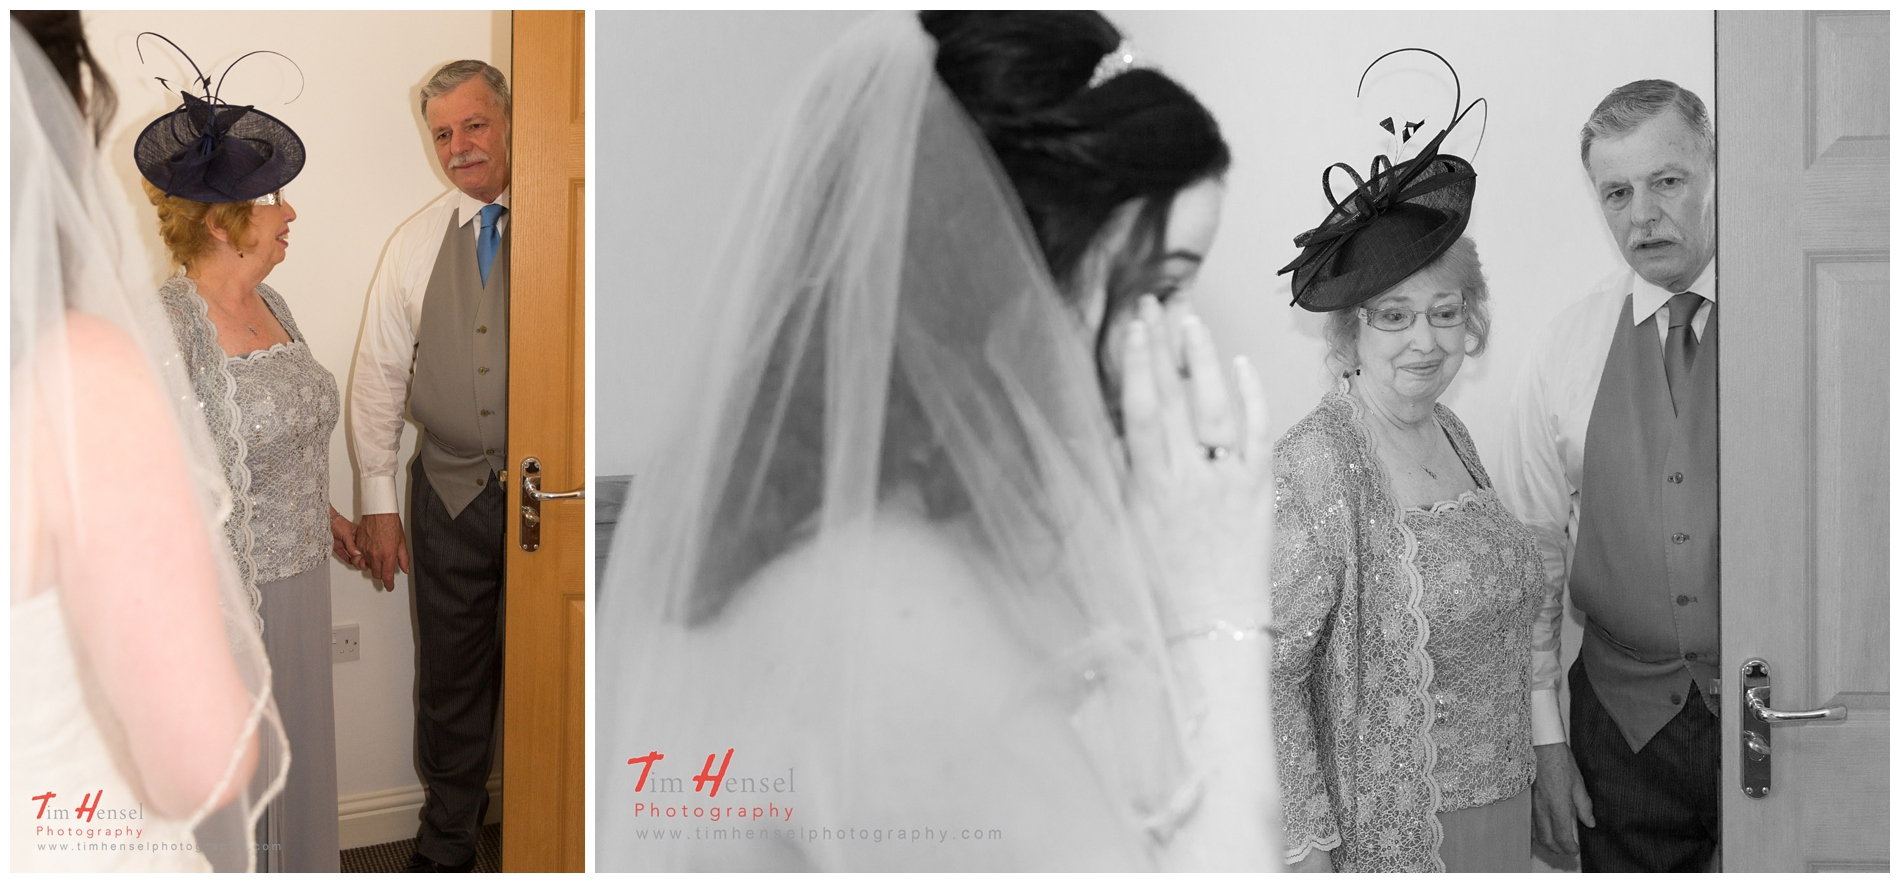 wedding photography in hathersage derbyshire - the bride's parents see her for the first time